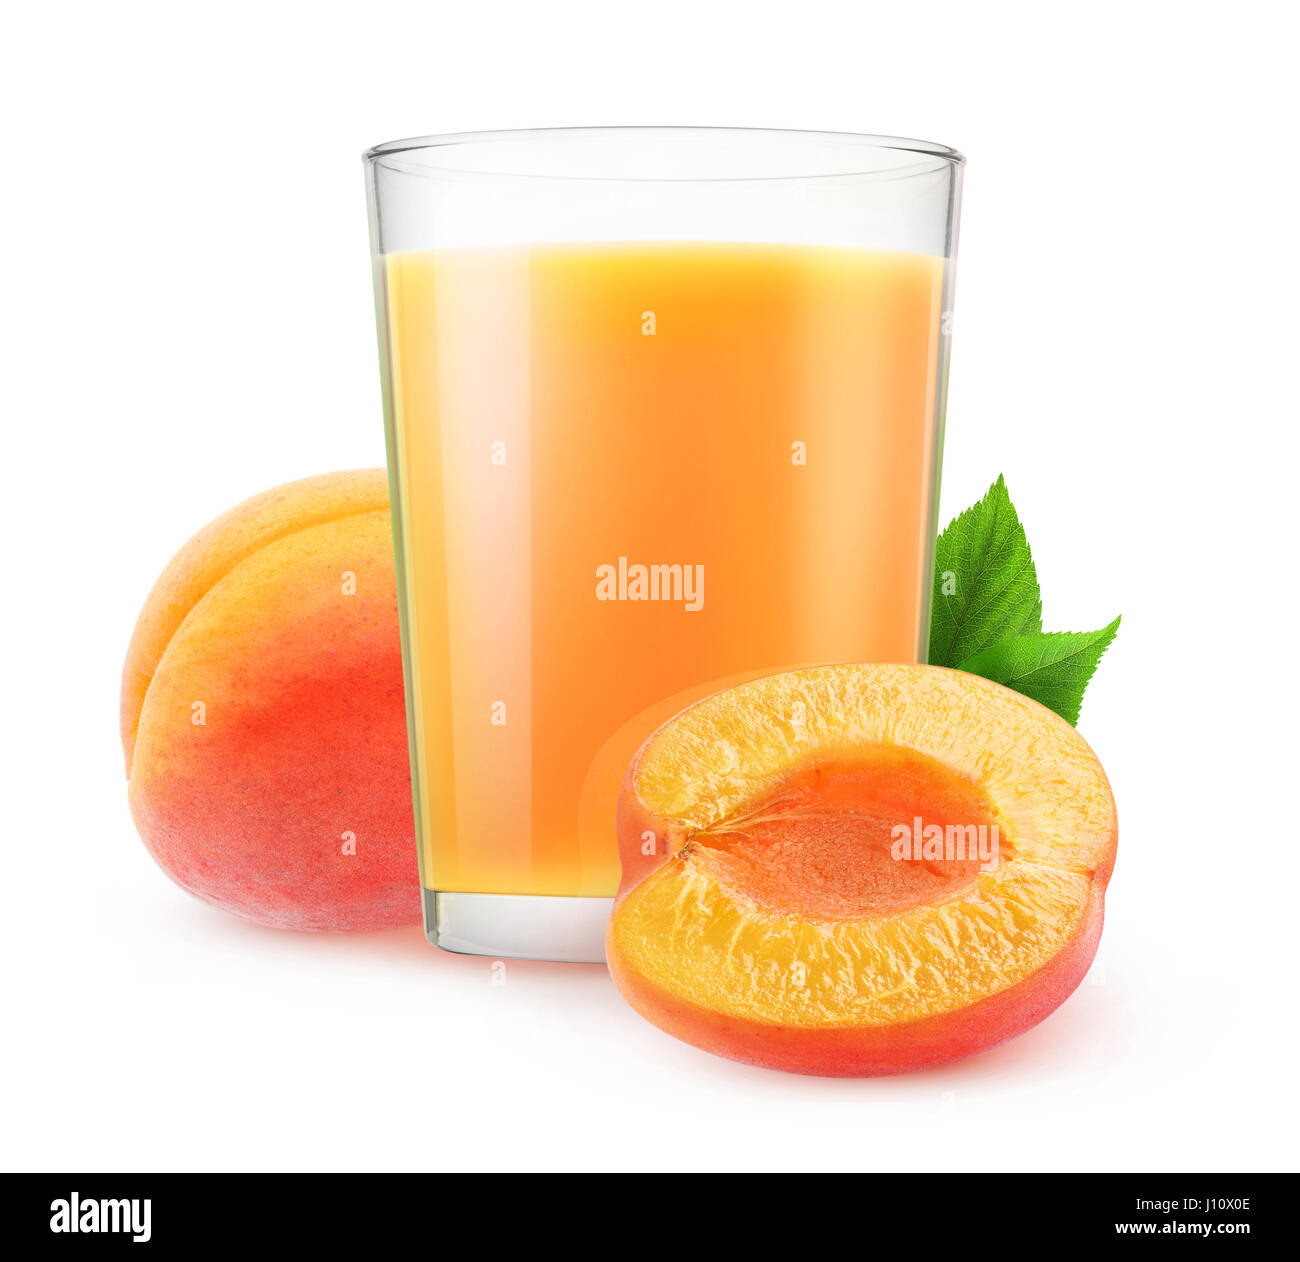 Isolated juice. Glass of apricot smoothie and cut fruits isolated on white background with clipping path - Stock Image